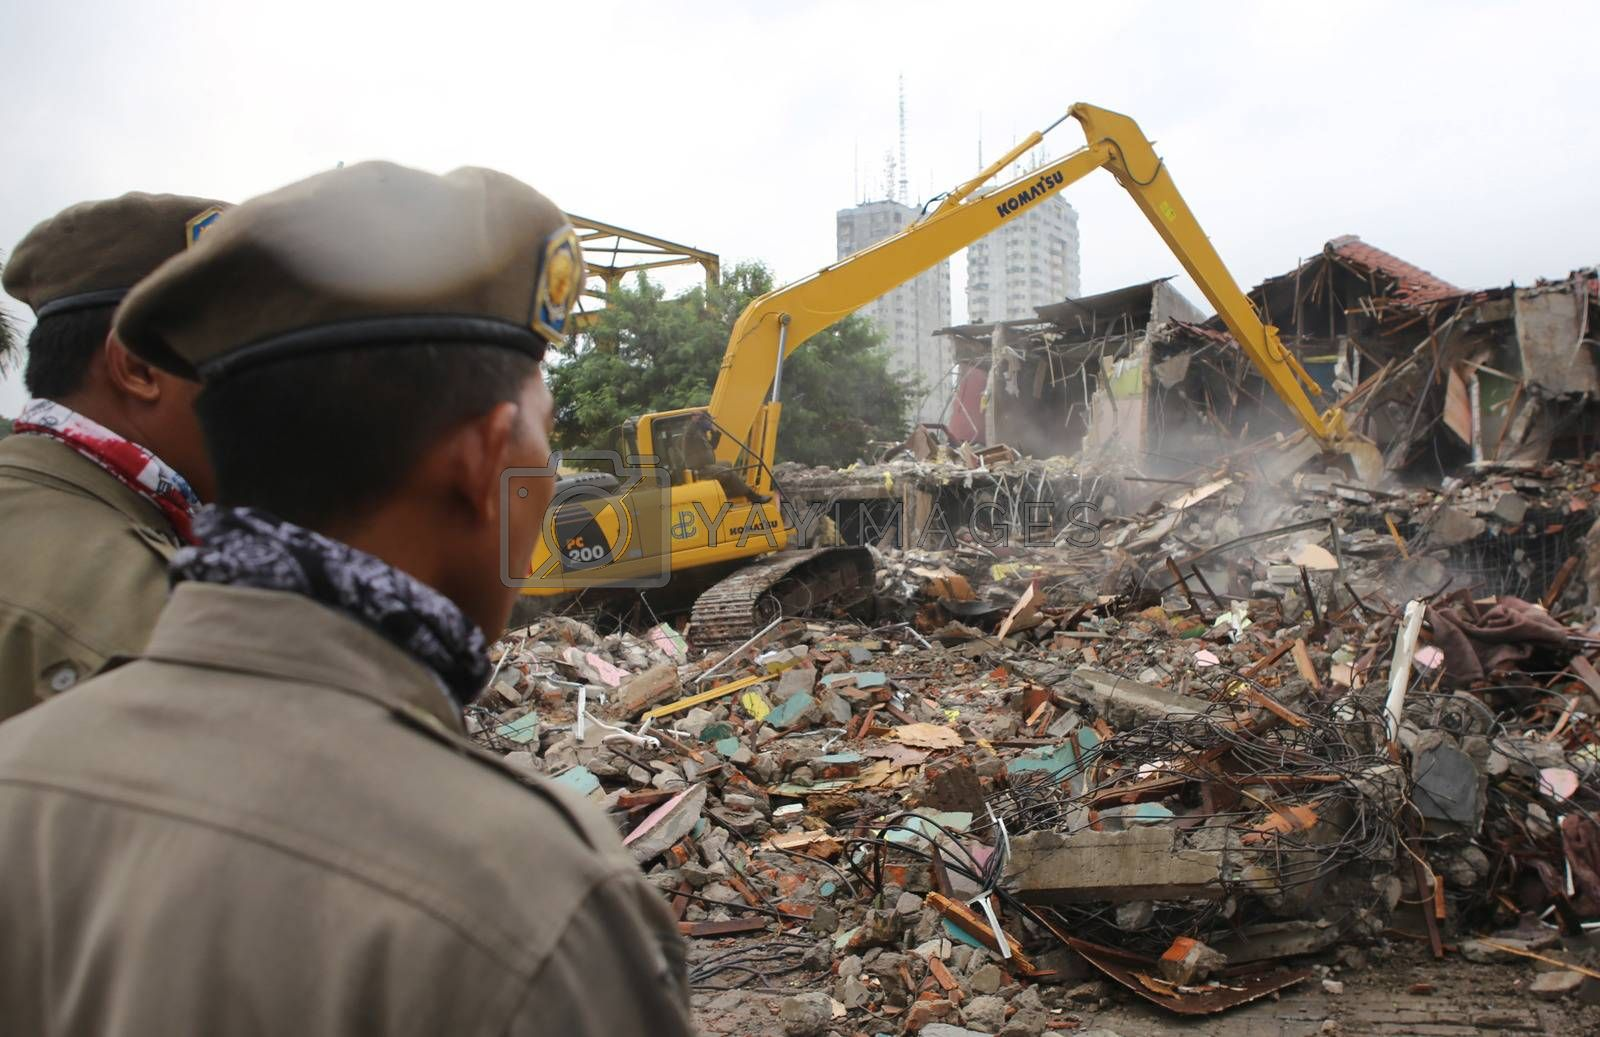 INDONESIA, Jakarta: Two policemen watches the demolition of houses of the Kalijodo red light district, in the Penjaringan subdistrict on the border of North and West Jakarta, on February 29, 2016. The neighborhood is home to about 3,000 people, including legal businesses and families. Hundreds face eviction for living among illegal brothels.